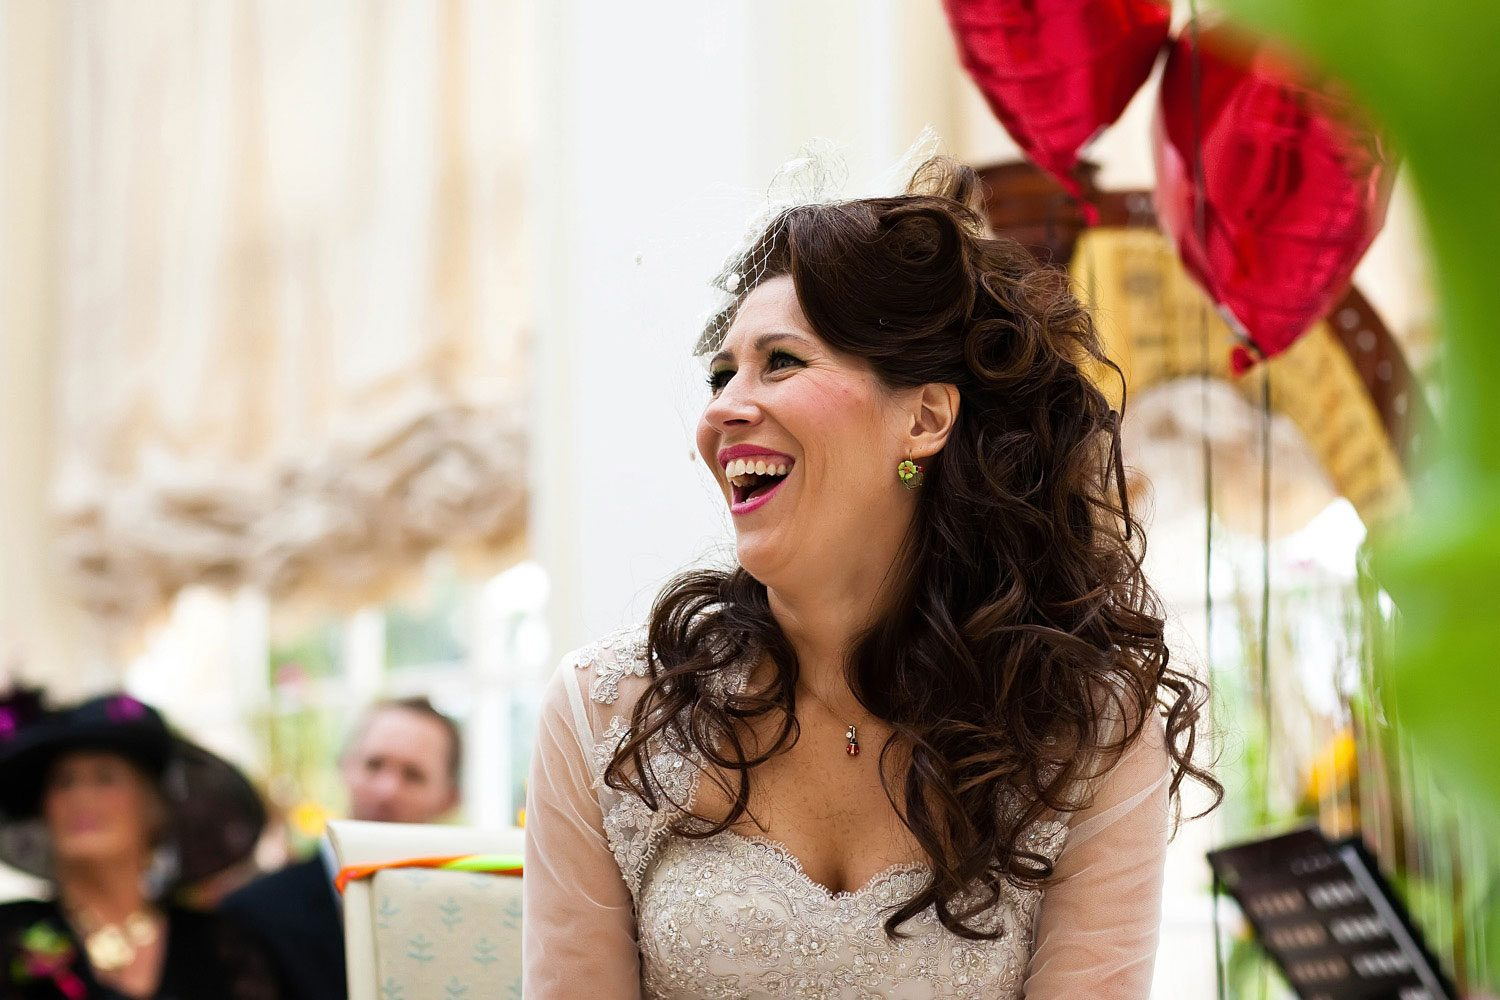 bride laughs surrounded by red helium balloons